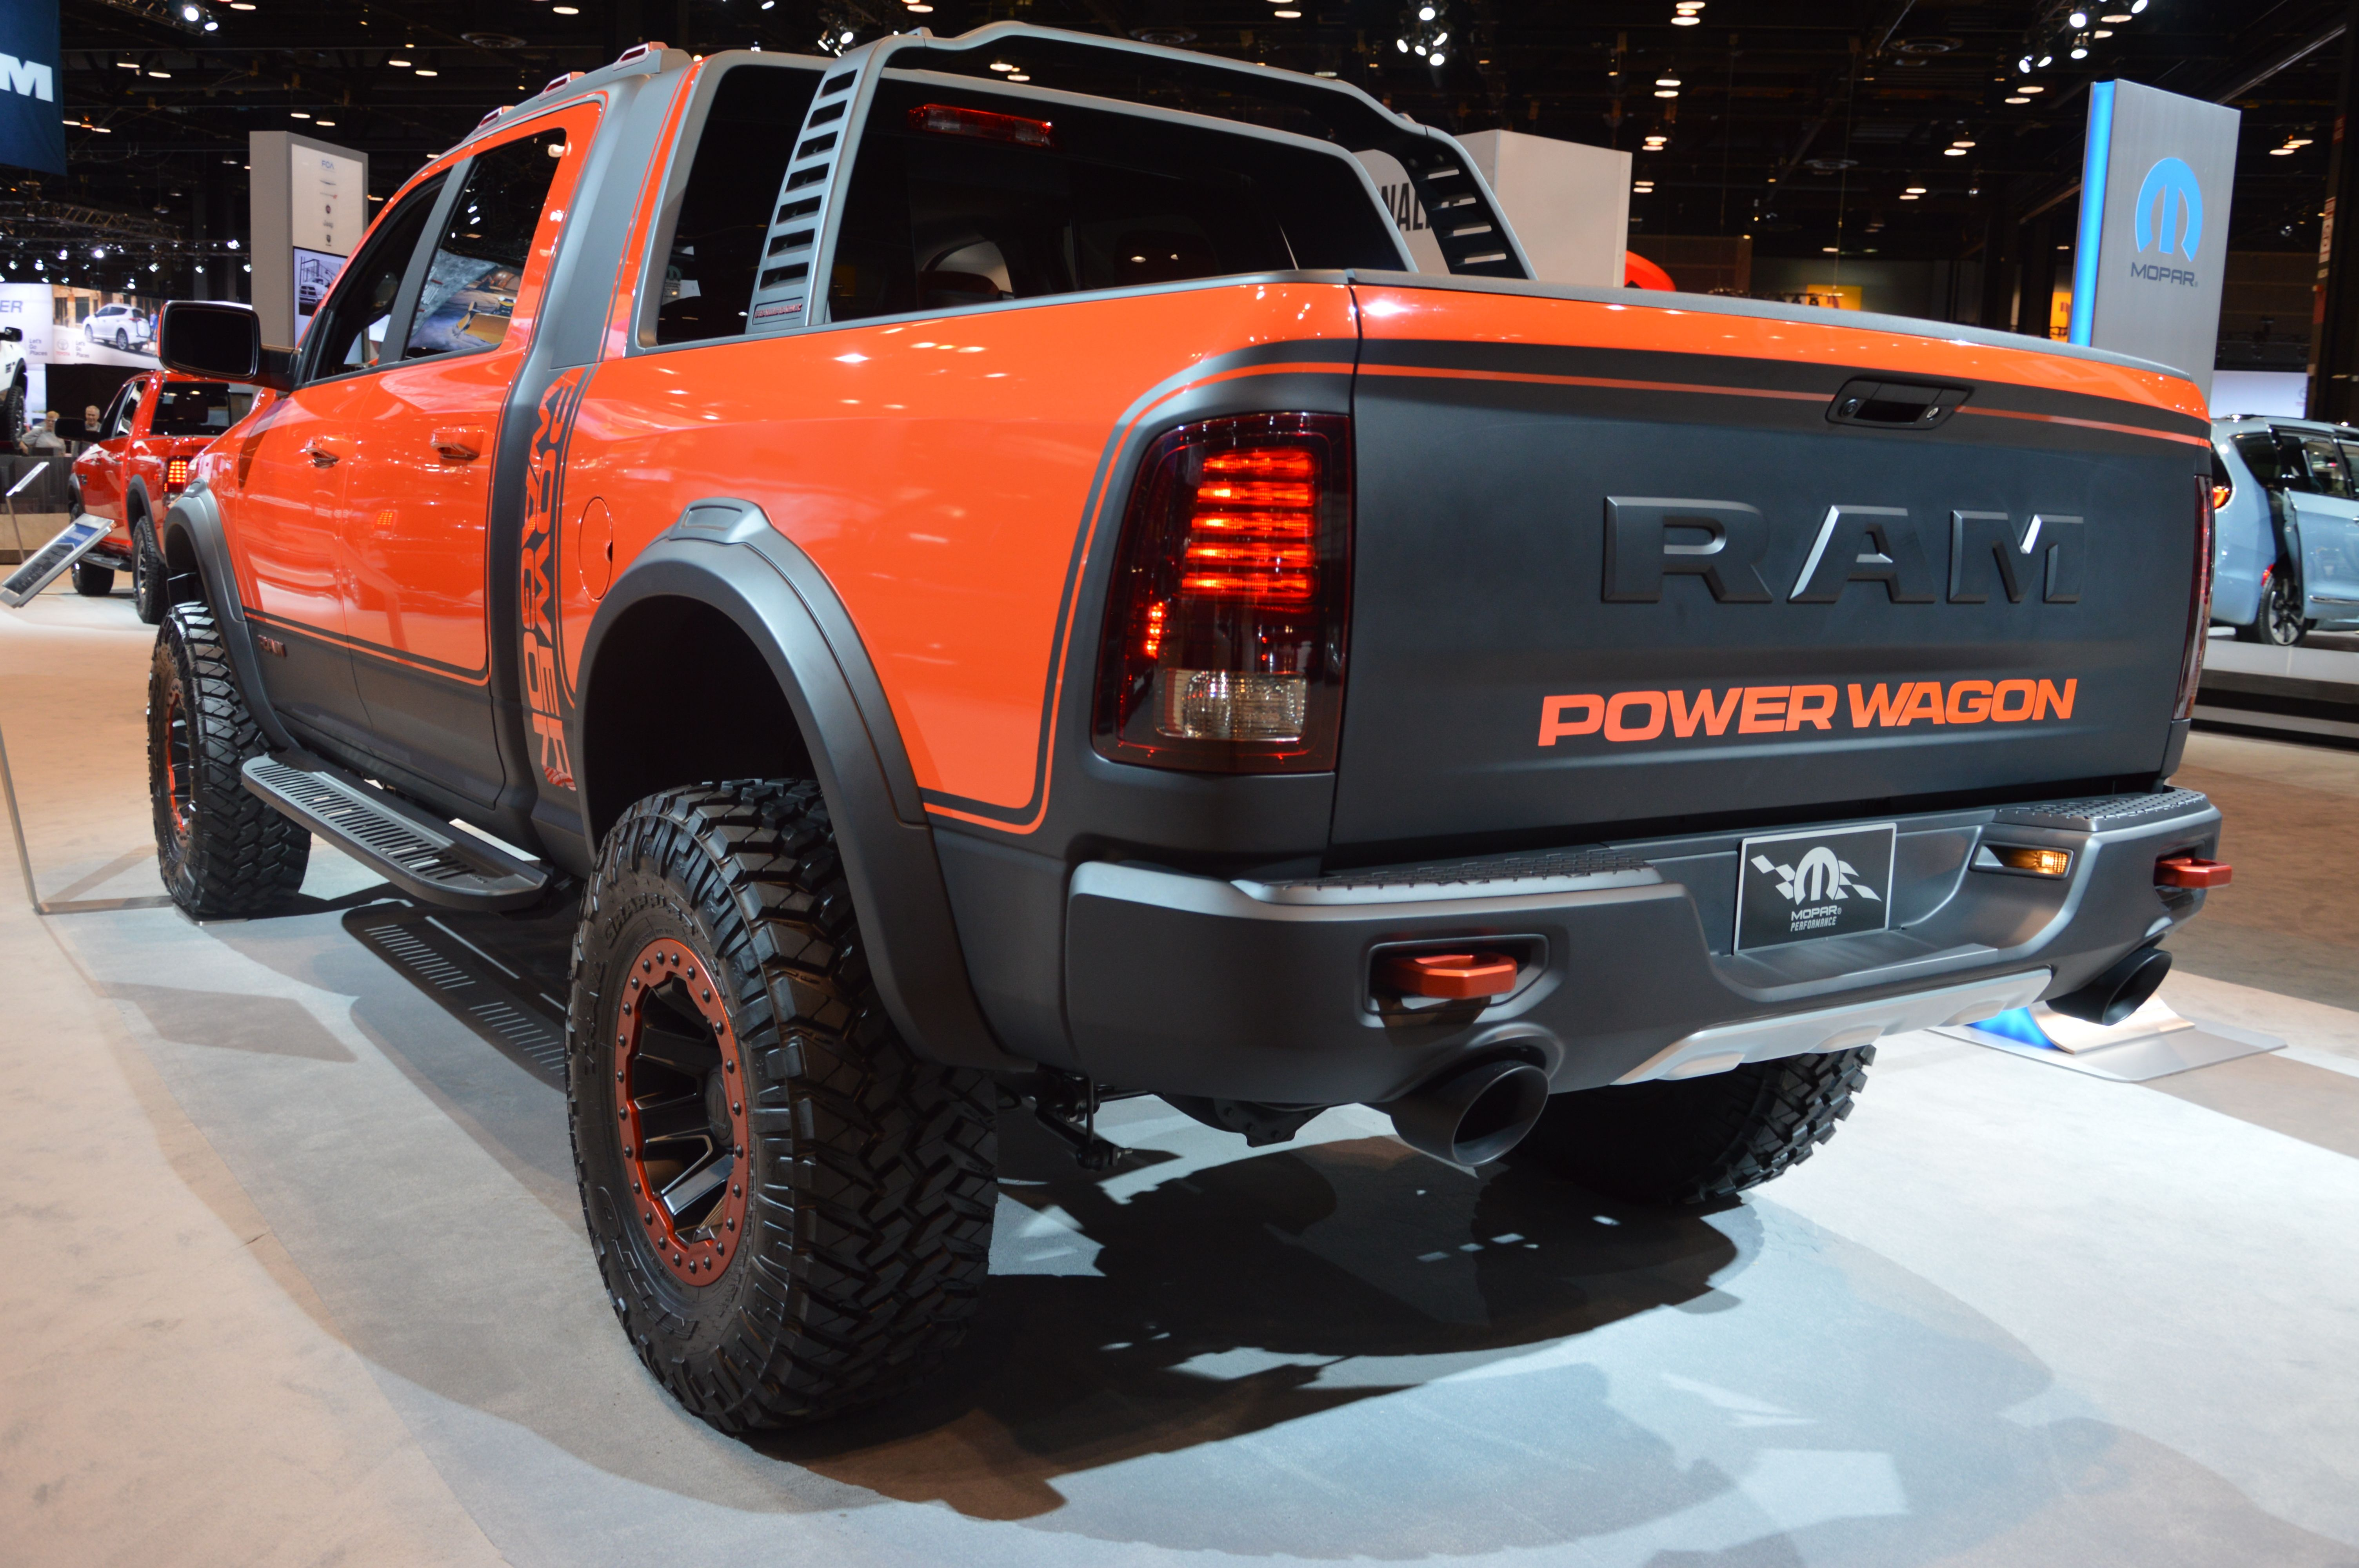 Fields Chrysler Jeep Dodge Ram Is Proud To Participate In The Chicago Auto  Show 2017. From #Ram, We Have The All New 2017 Ram 2500 Power Wagon.